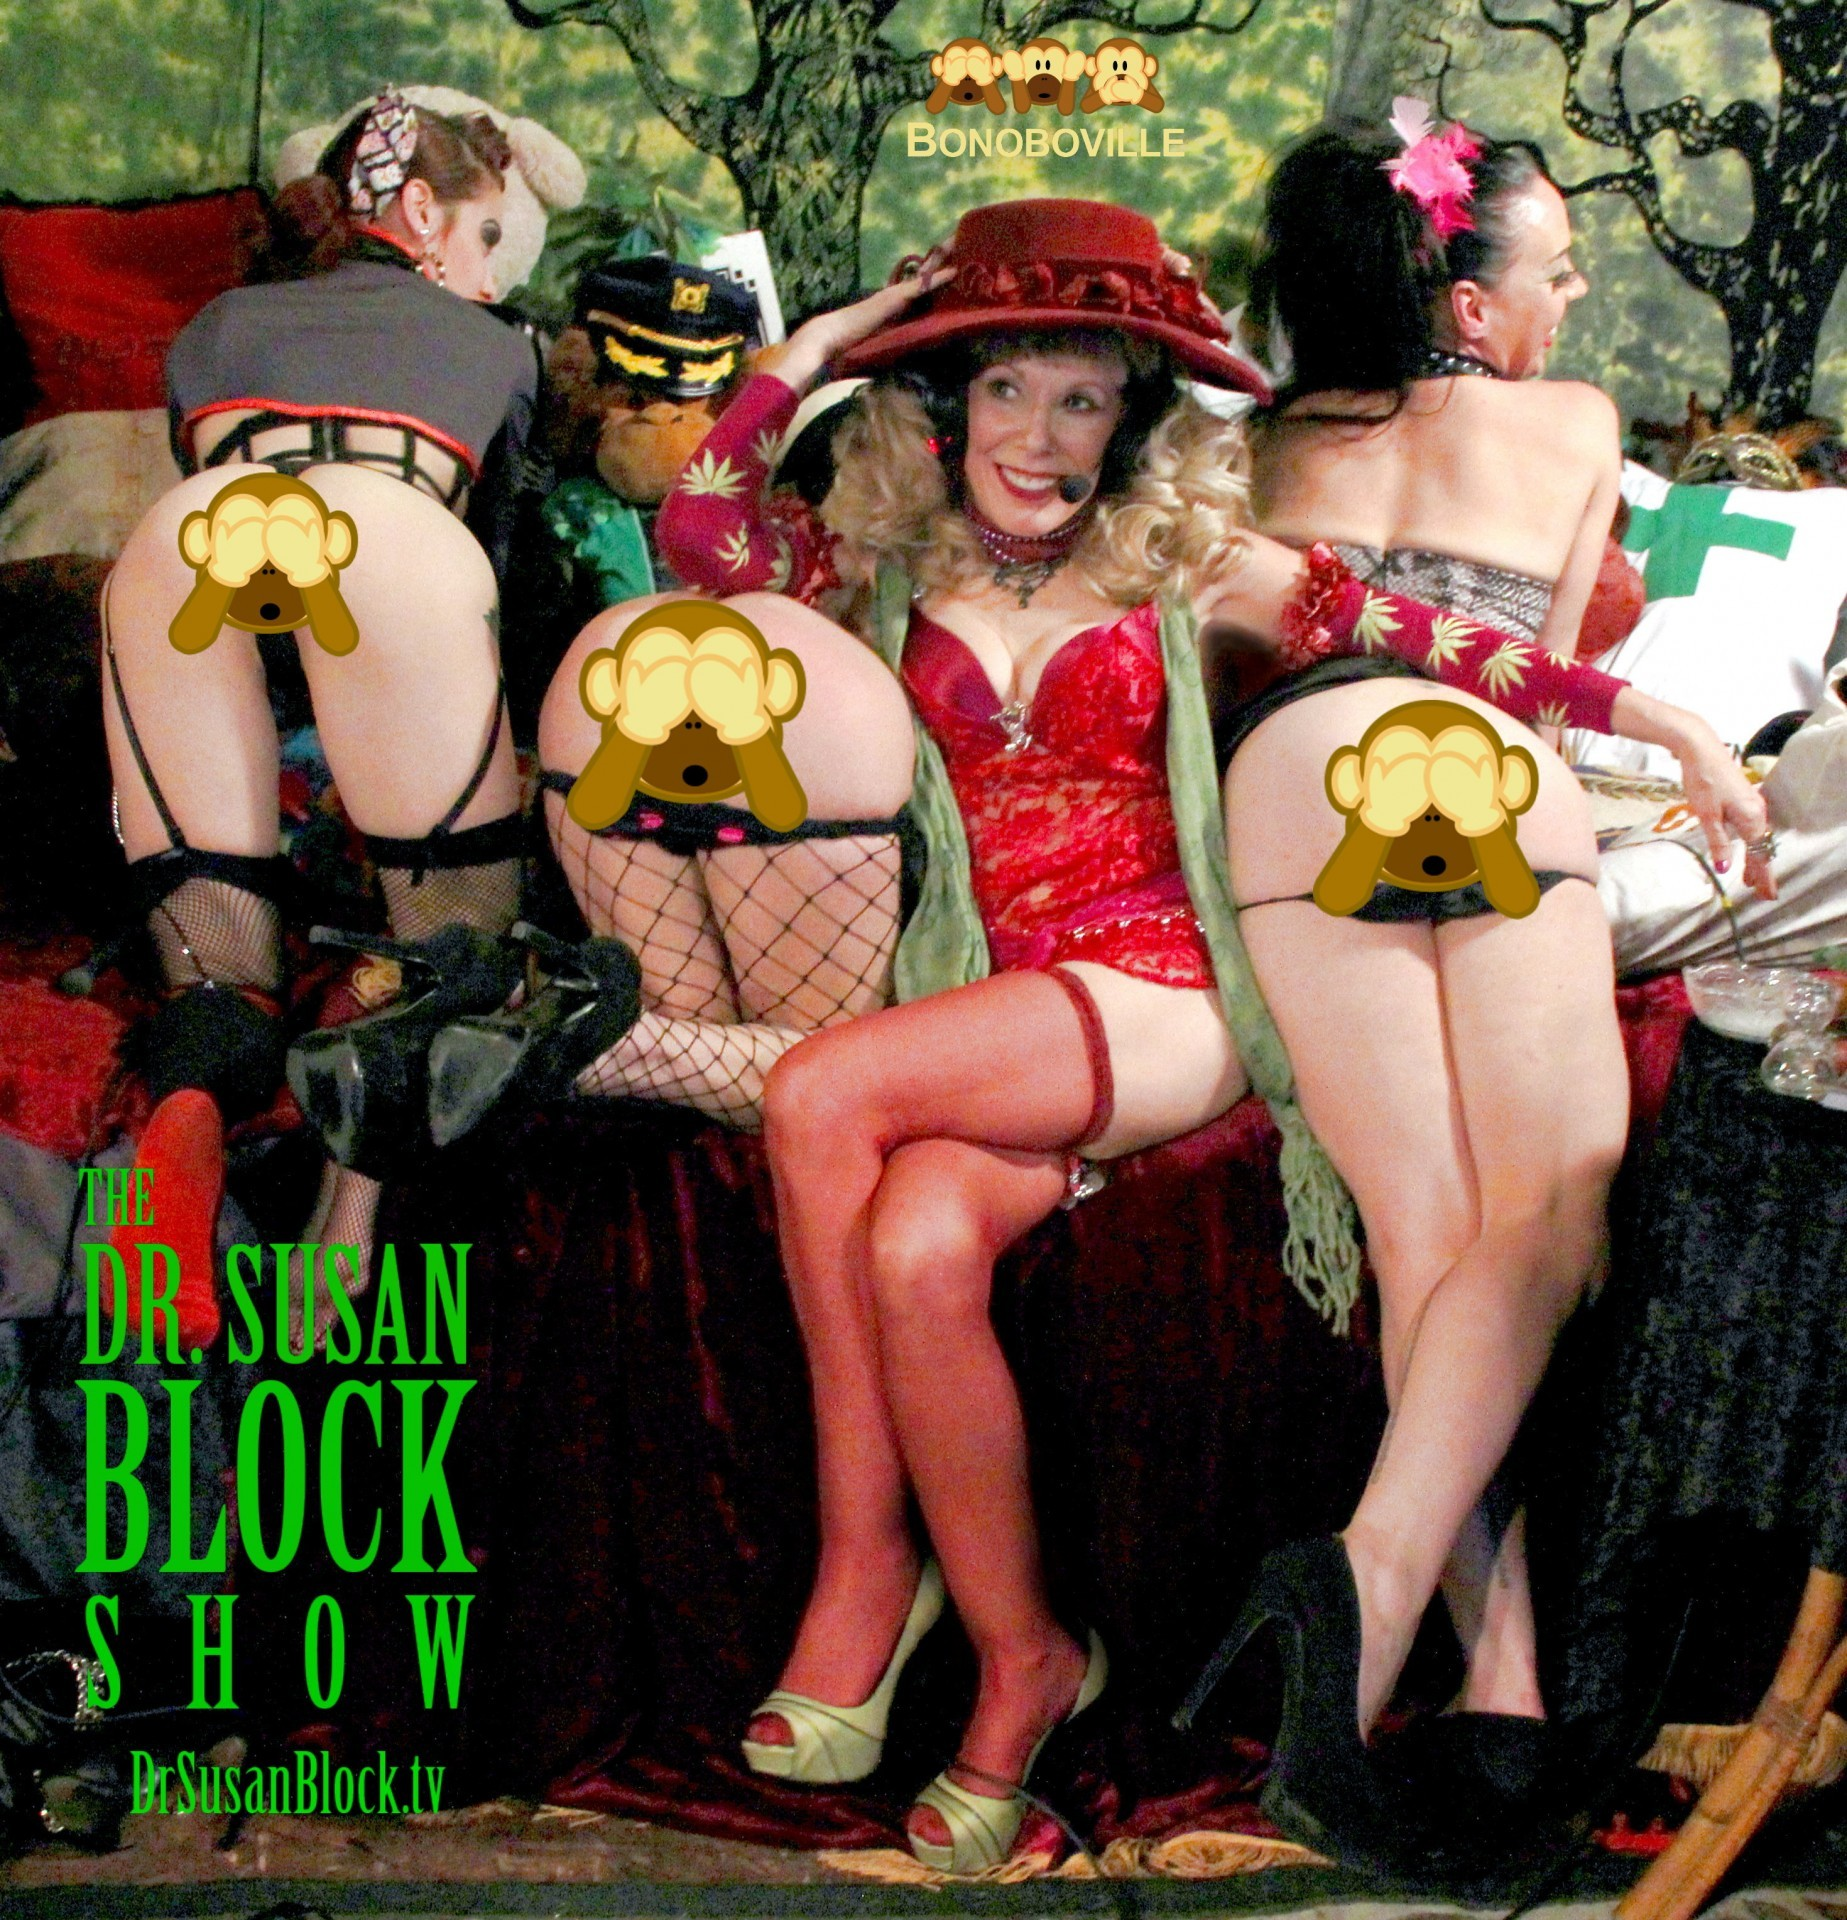 Spanksgiving in Bonoboville with Onyx Muse! #StandWithPP